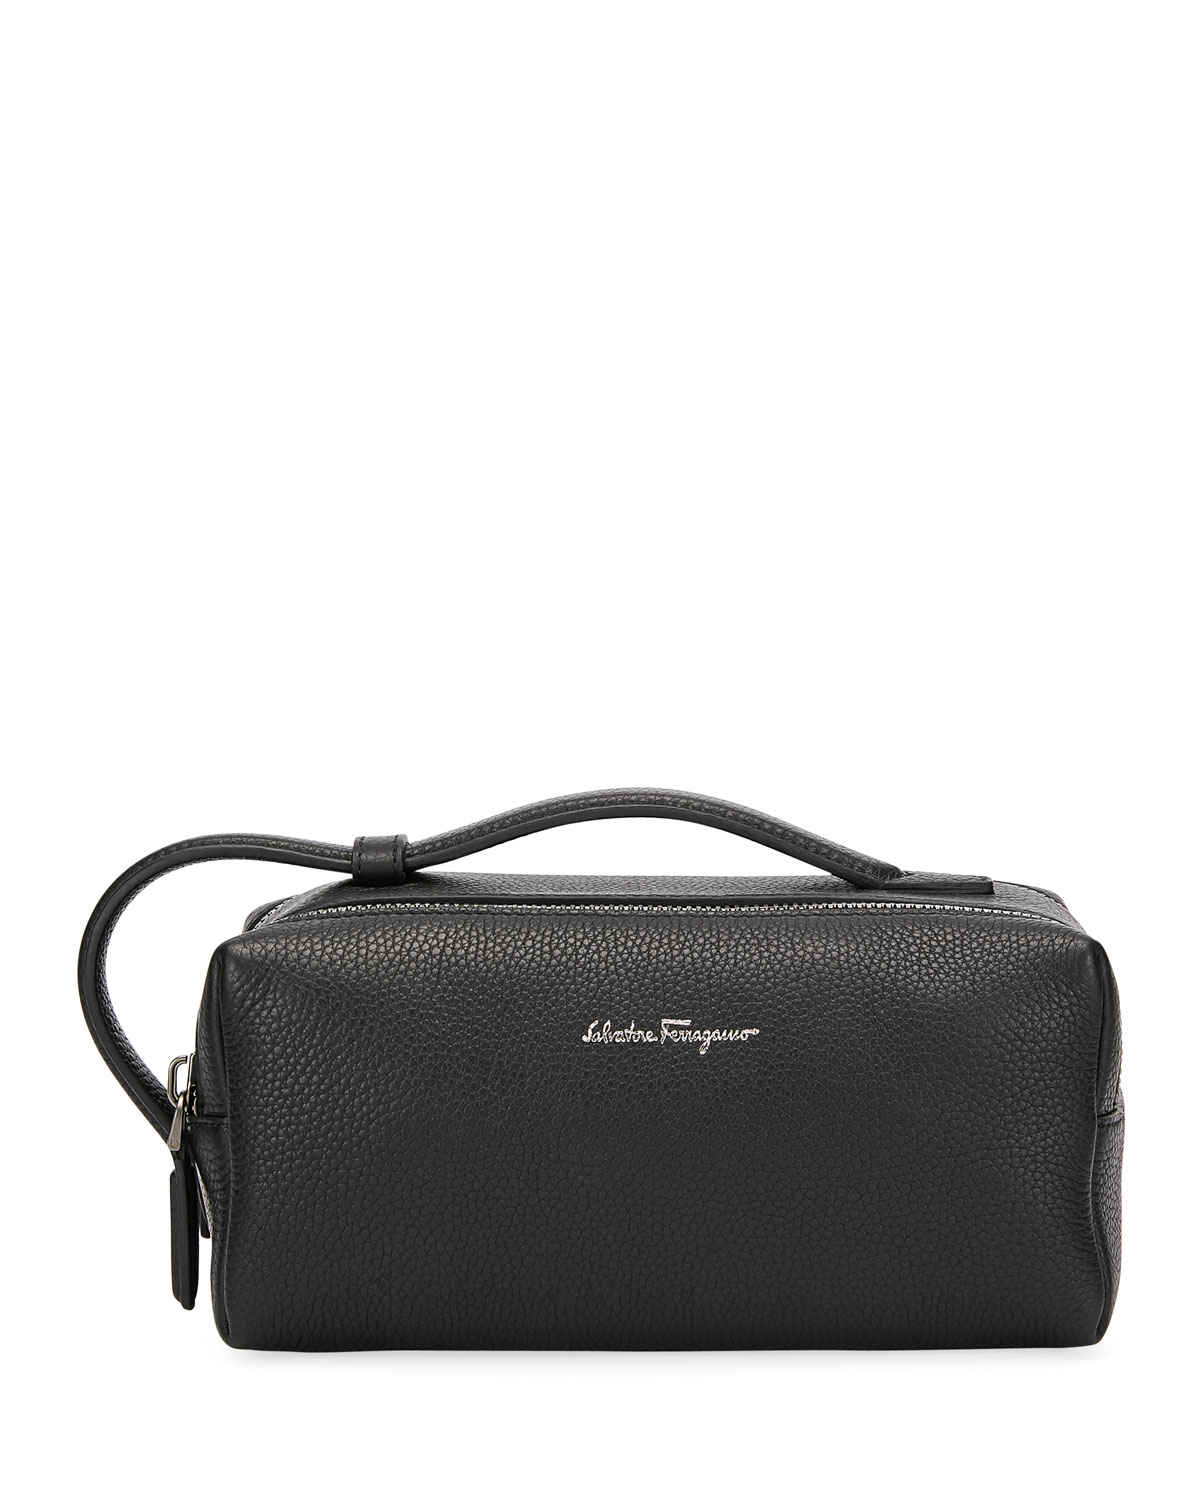 Salvatore Ferragamo Men s Firenze Leather Toiletry Bag  7d3b96d76d6d4